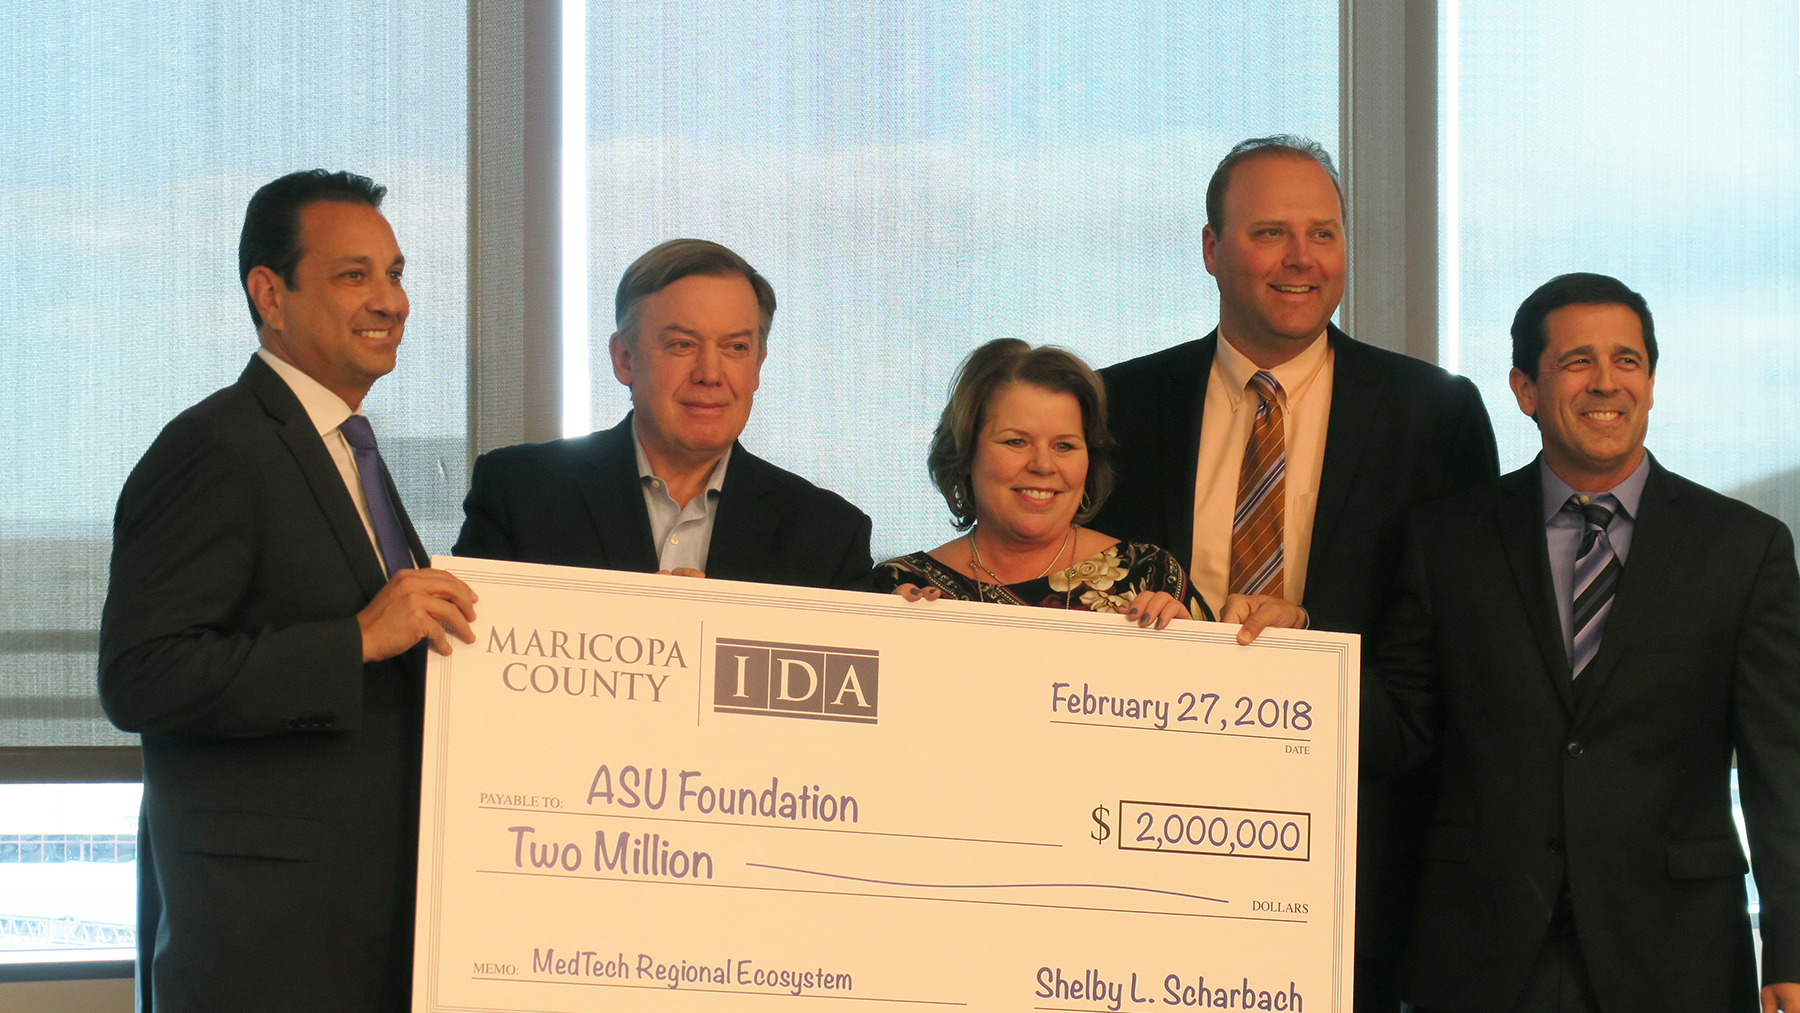 ASU President Michael Crow accepts a poster-sized $2 million check to kick off a medical technology workforce development initiation from a group of four Maricopa County executives: Steve Chucri, Shelby L. Scharbach, Jeremy Stawiecki, and Gregg Ghelfi.